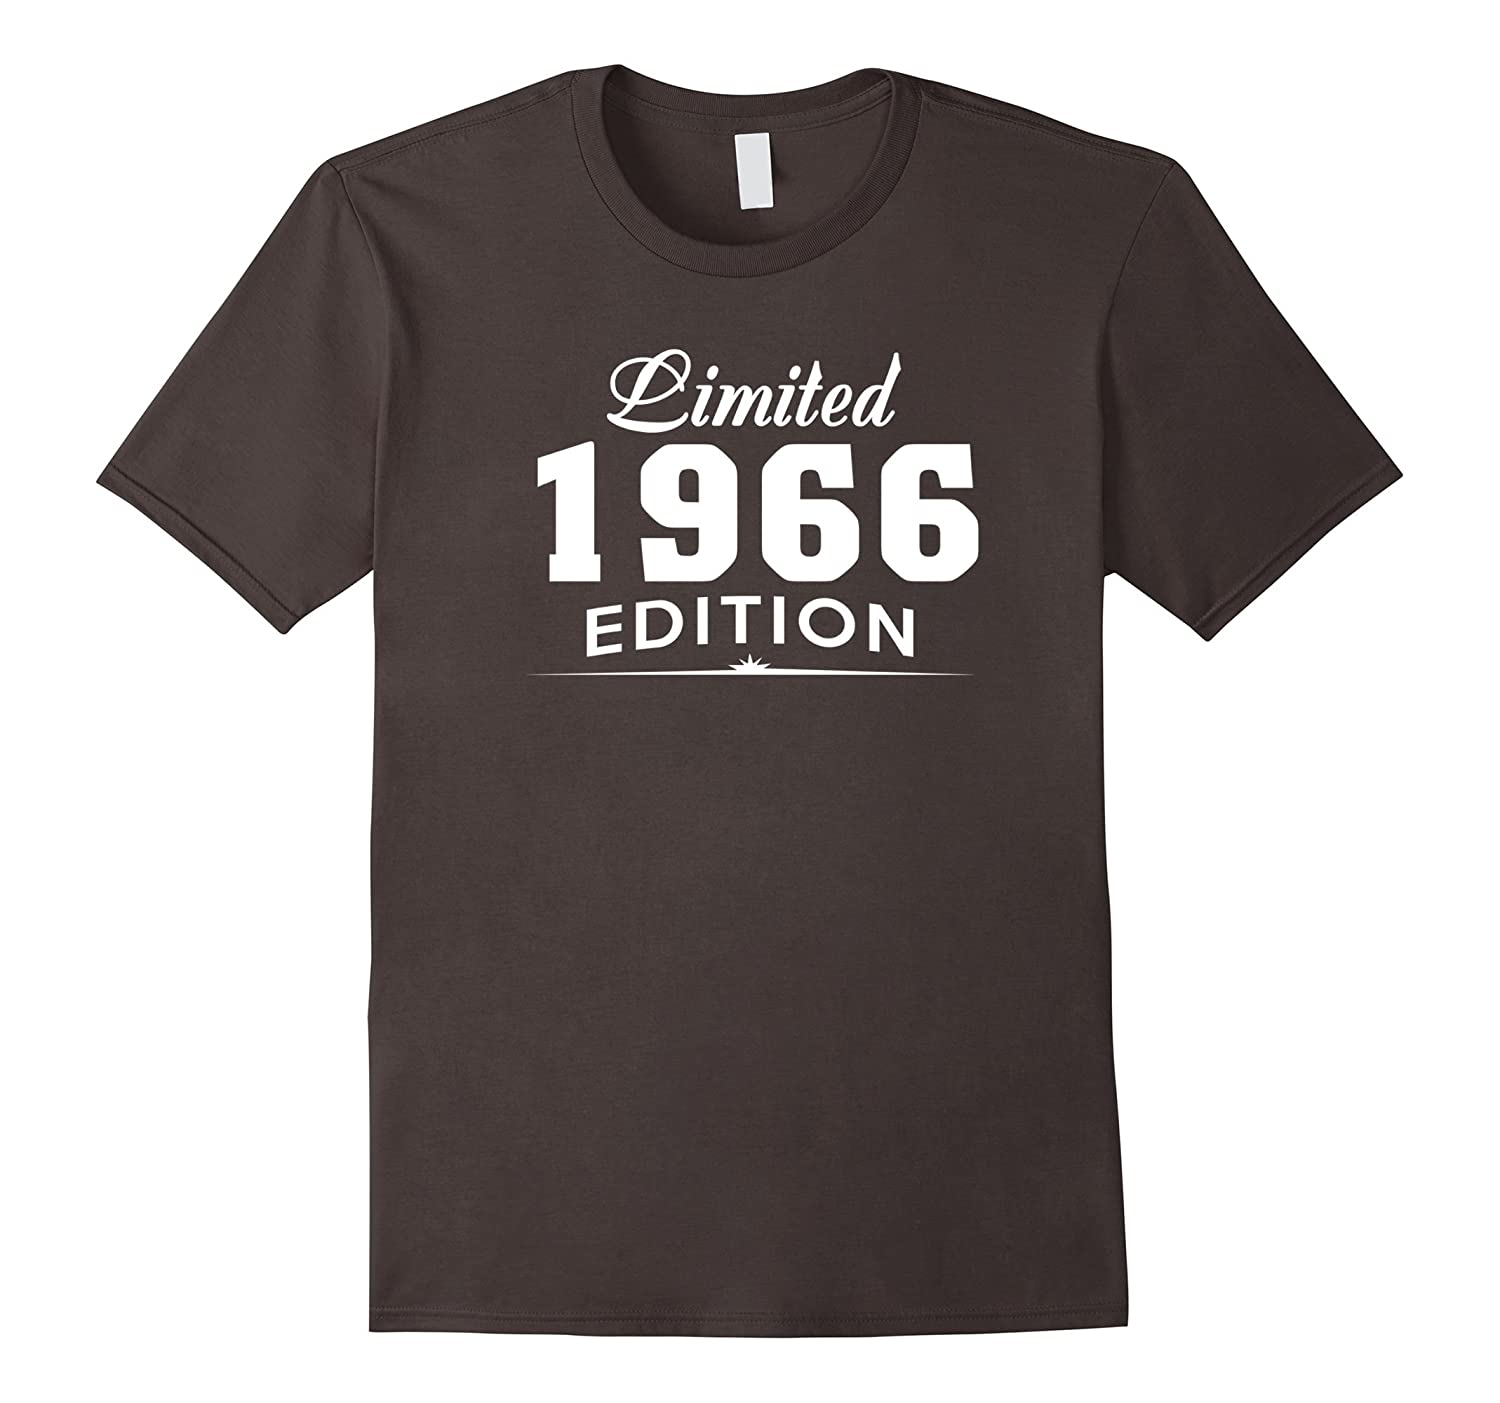 Limited 1966 Edition T Shirt